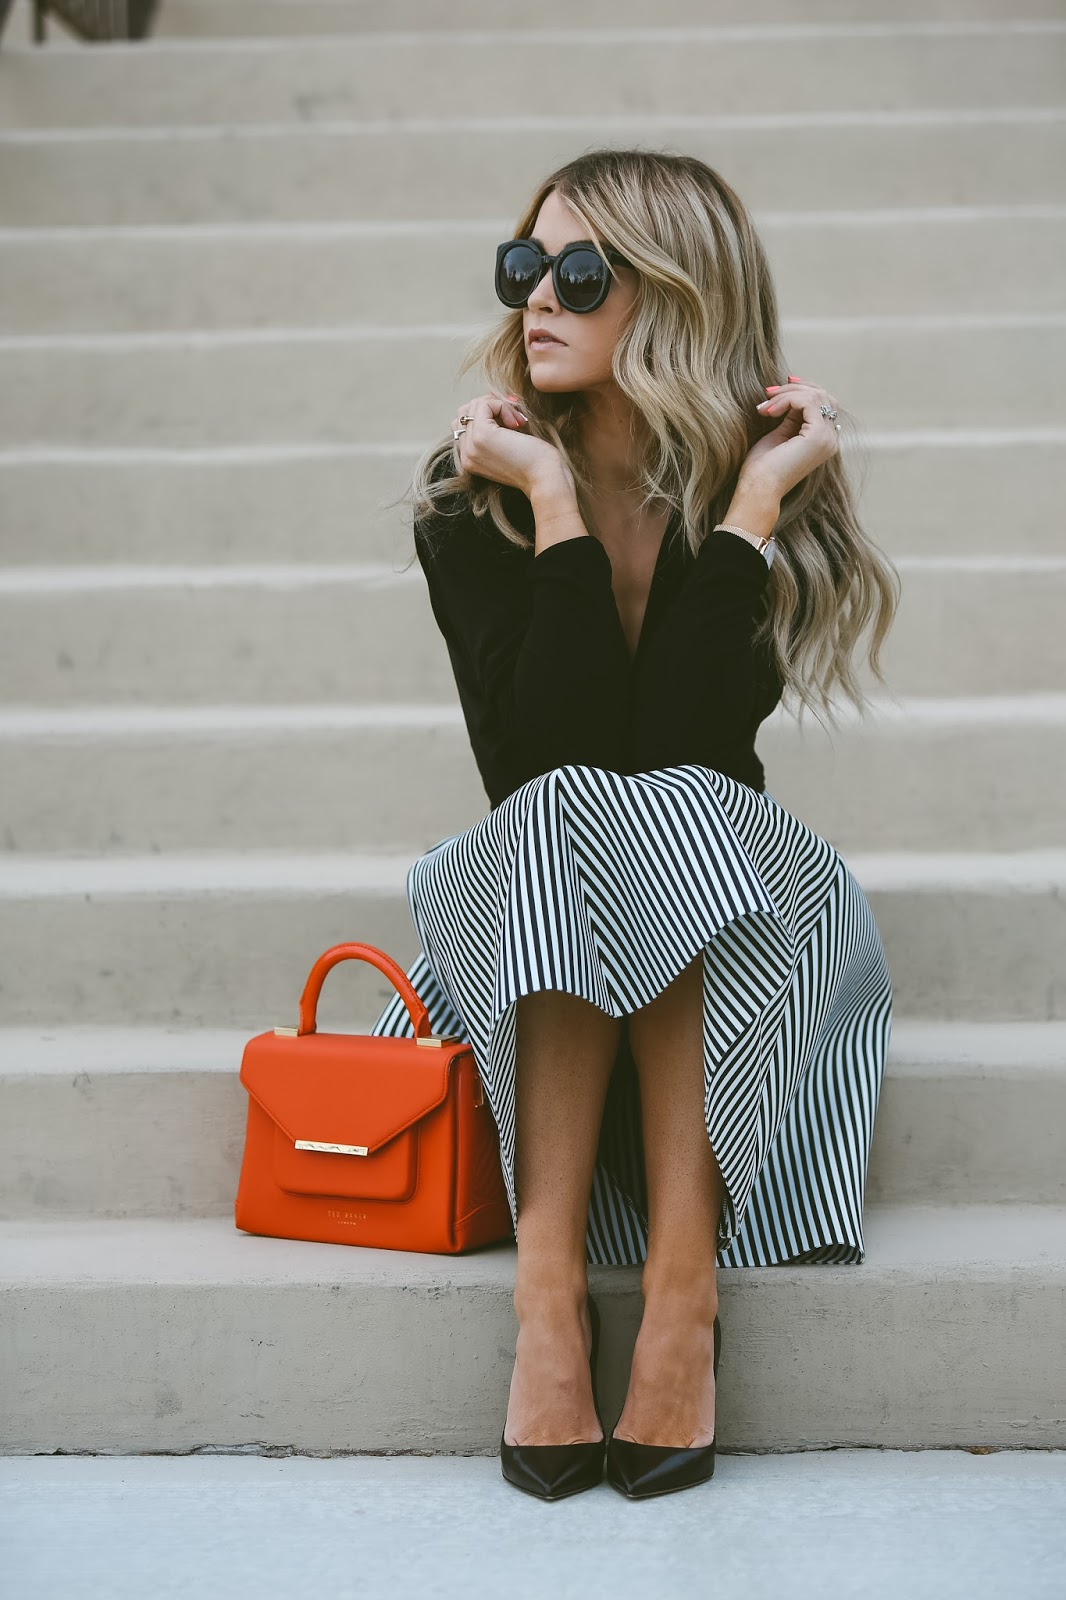 Statement patterns are in this spring! Cara Loren is wearing a gorgeous striped A line skirt, creating an ultra sophisticated look paired with a simple black top. The key with statement prints is to keep the other details of your outfit to a minimum, so as not to detract attention! Skirt: Windsor, Top: Shopbop, Shoes: The Cammeo.